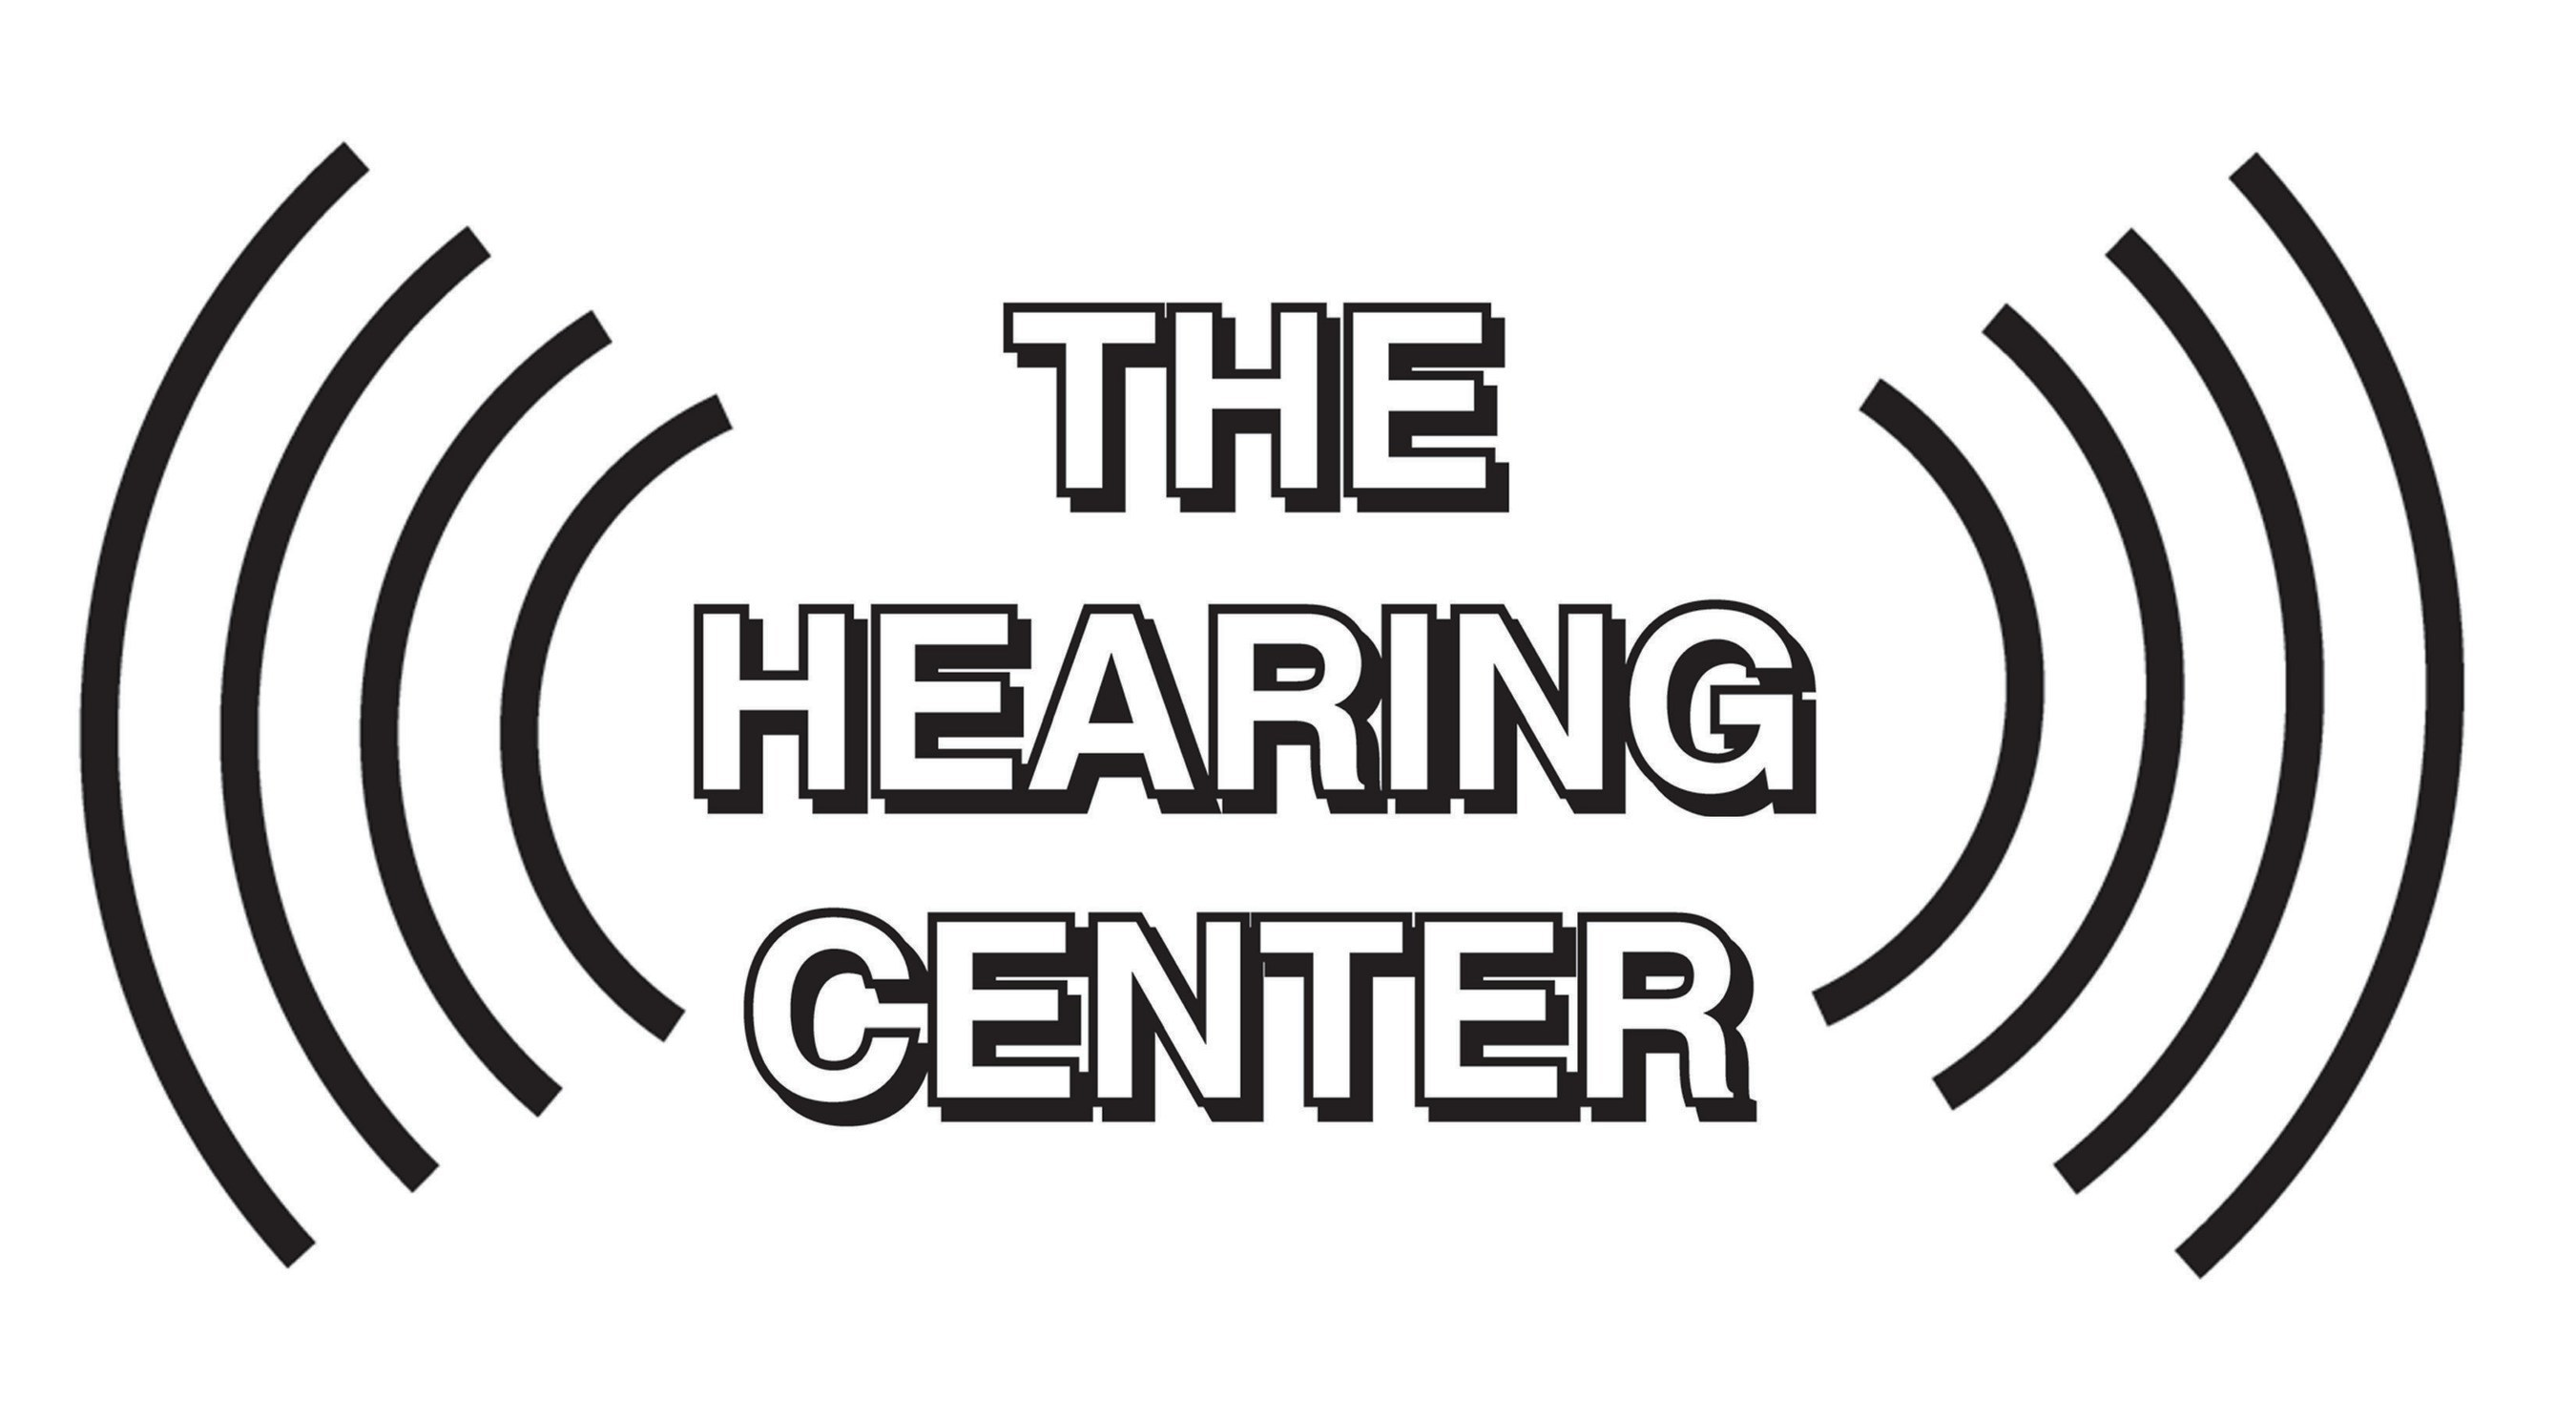 Central New Jersey Hearing Center Offers Comprehensive